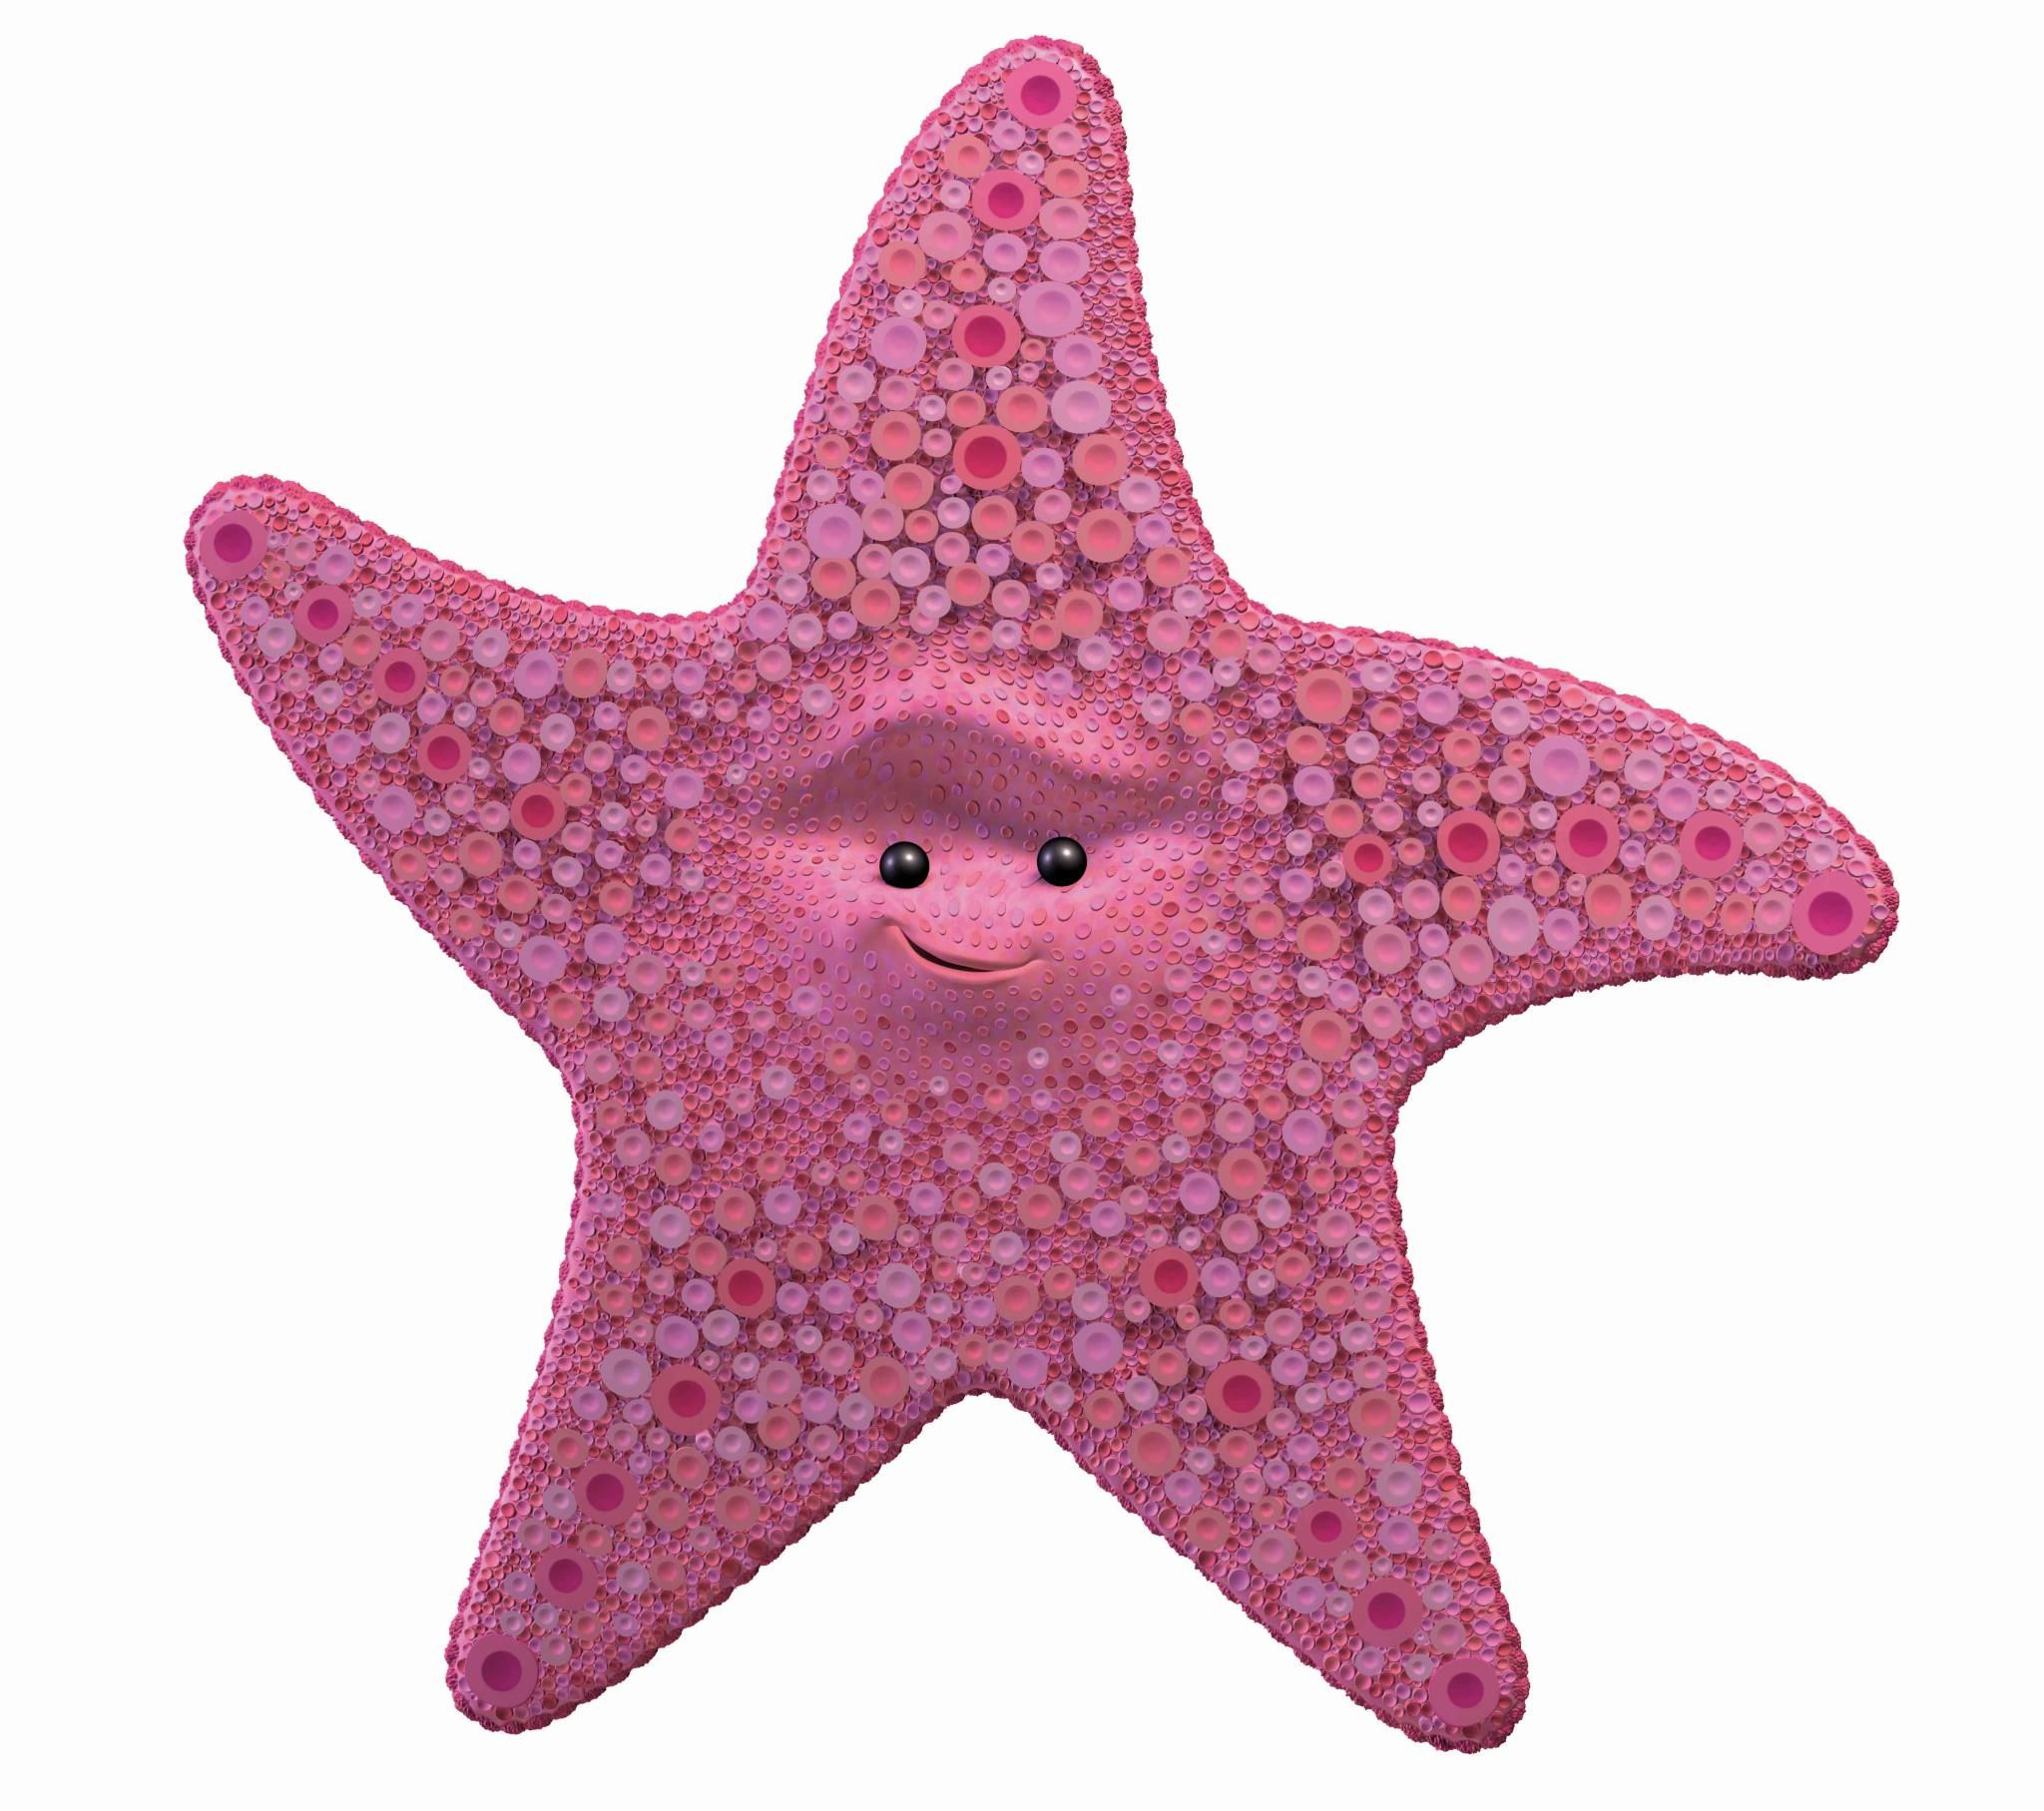 Gallery For gt Finding Nemo Starfish Find A Happy Place